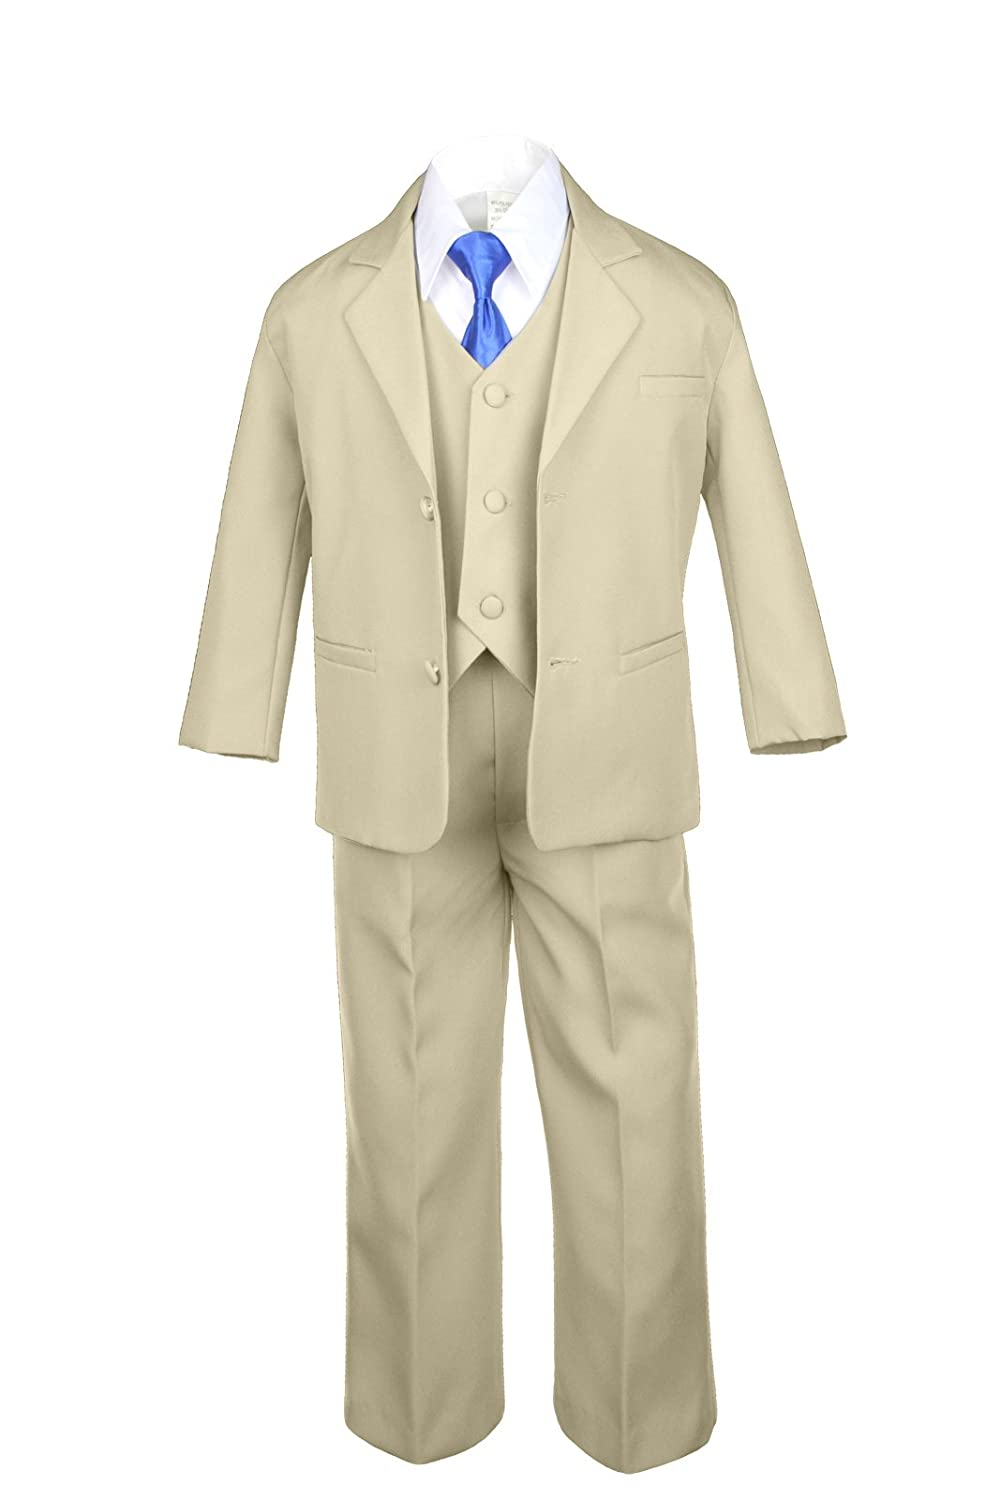 6pc Boy Khaki Vest Set Formal Tuxedo Suits with Satin Royal Blue Necktie Baby to Teen